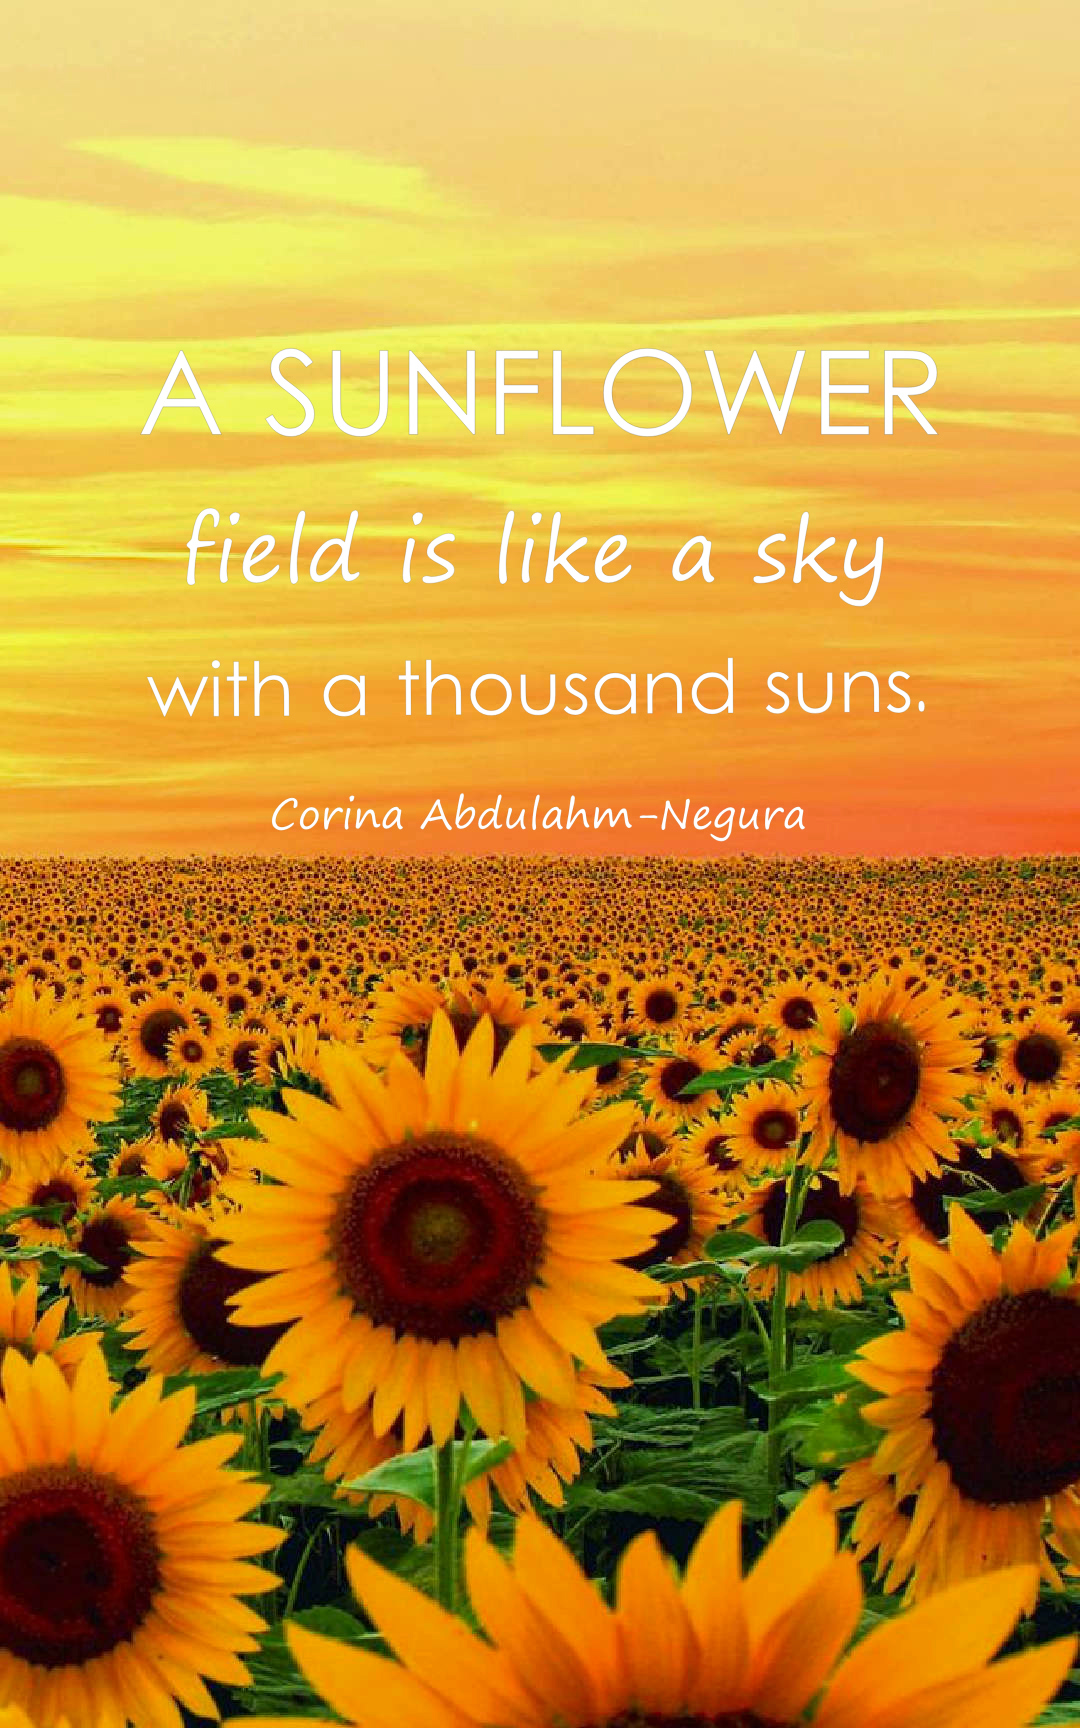 23 Beautiful Sunflower Quotes with Images